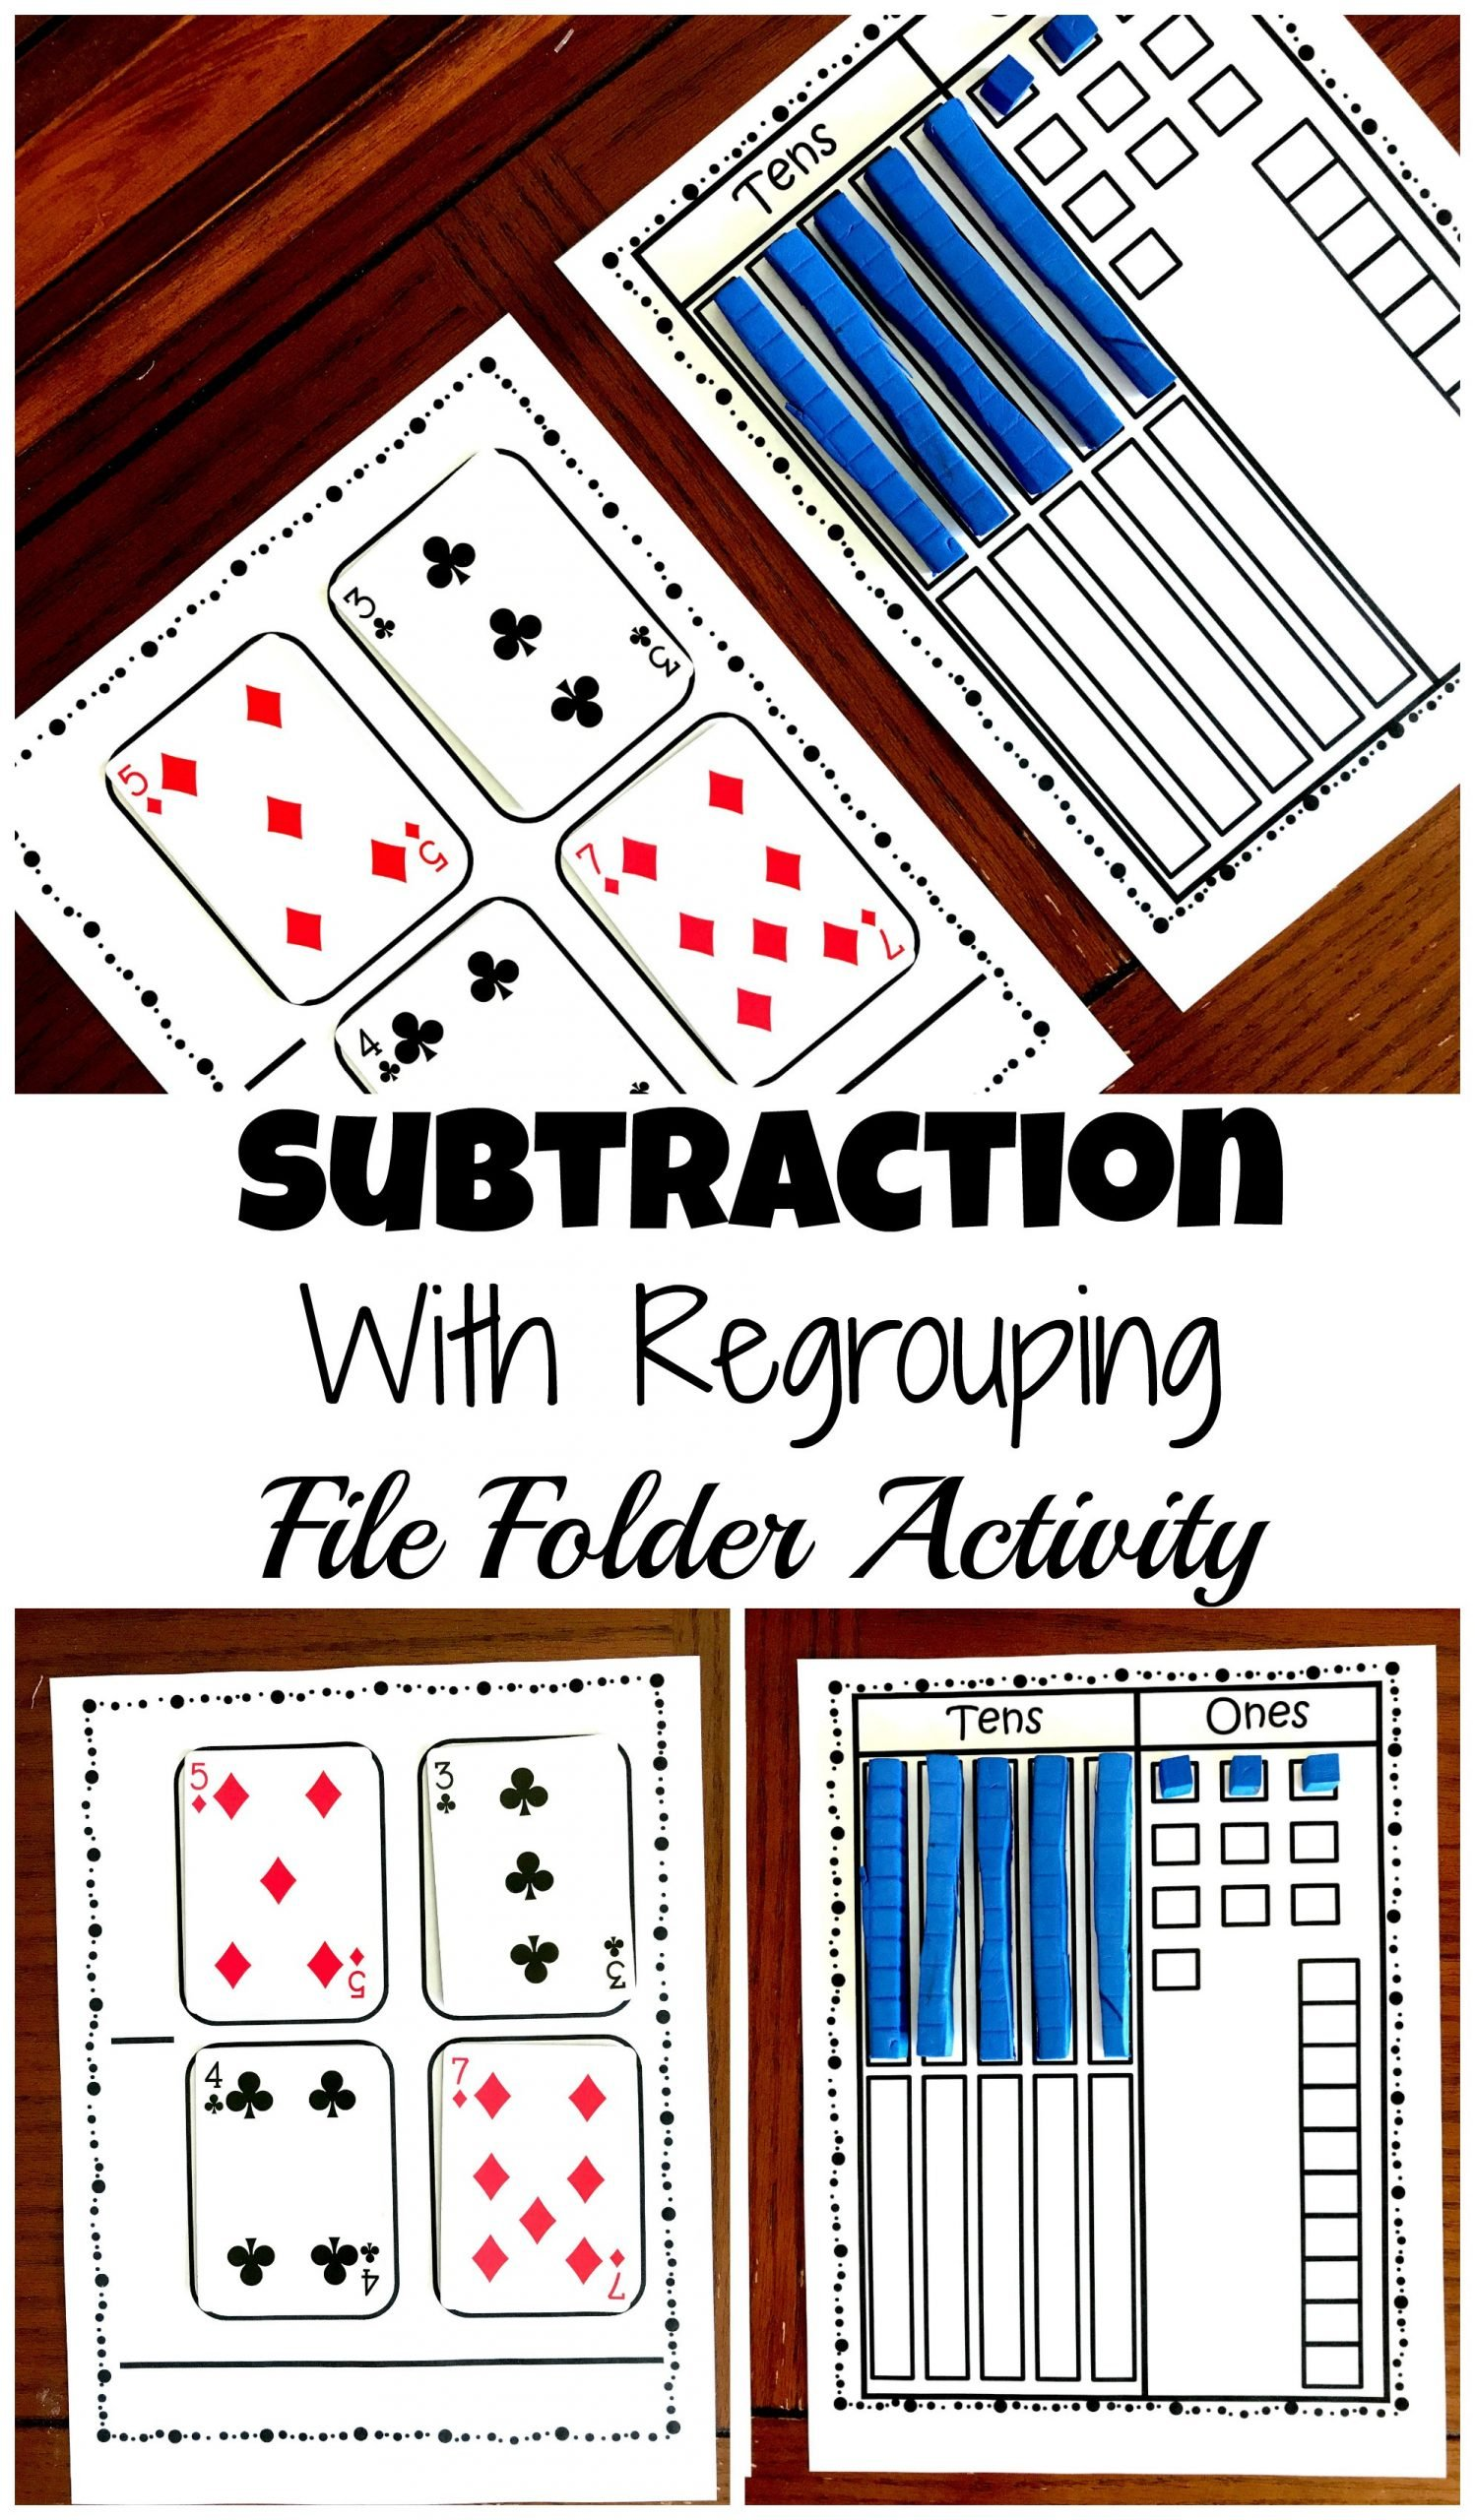 Subtraction with regrouping file folder activity